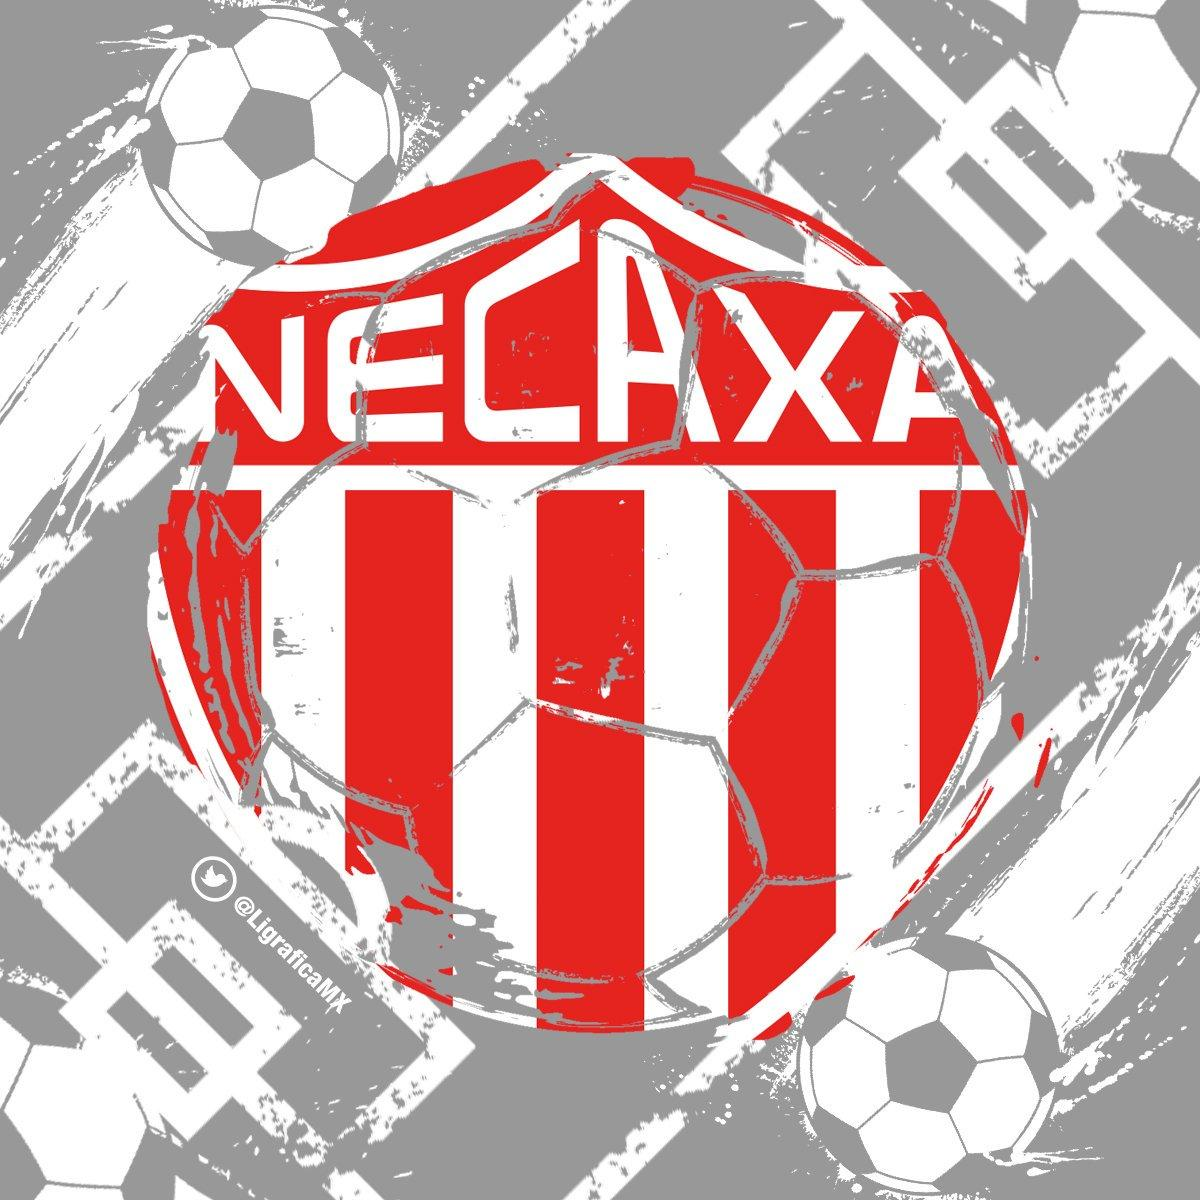 ElFutbolNosInspira on Twitter: @ClubNecaxa Wallpapers